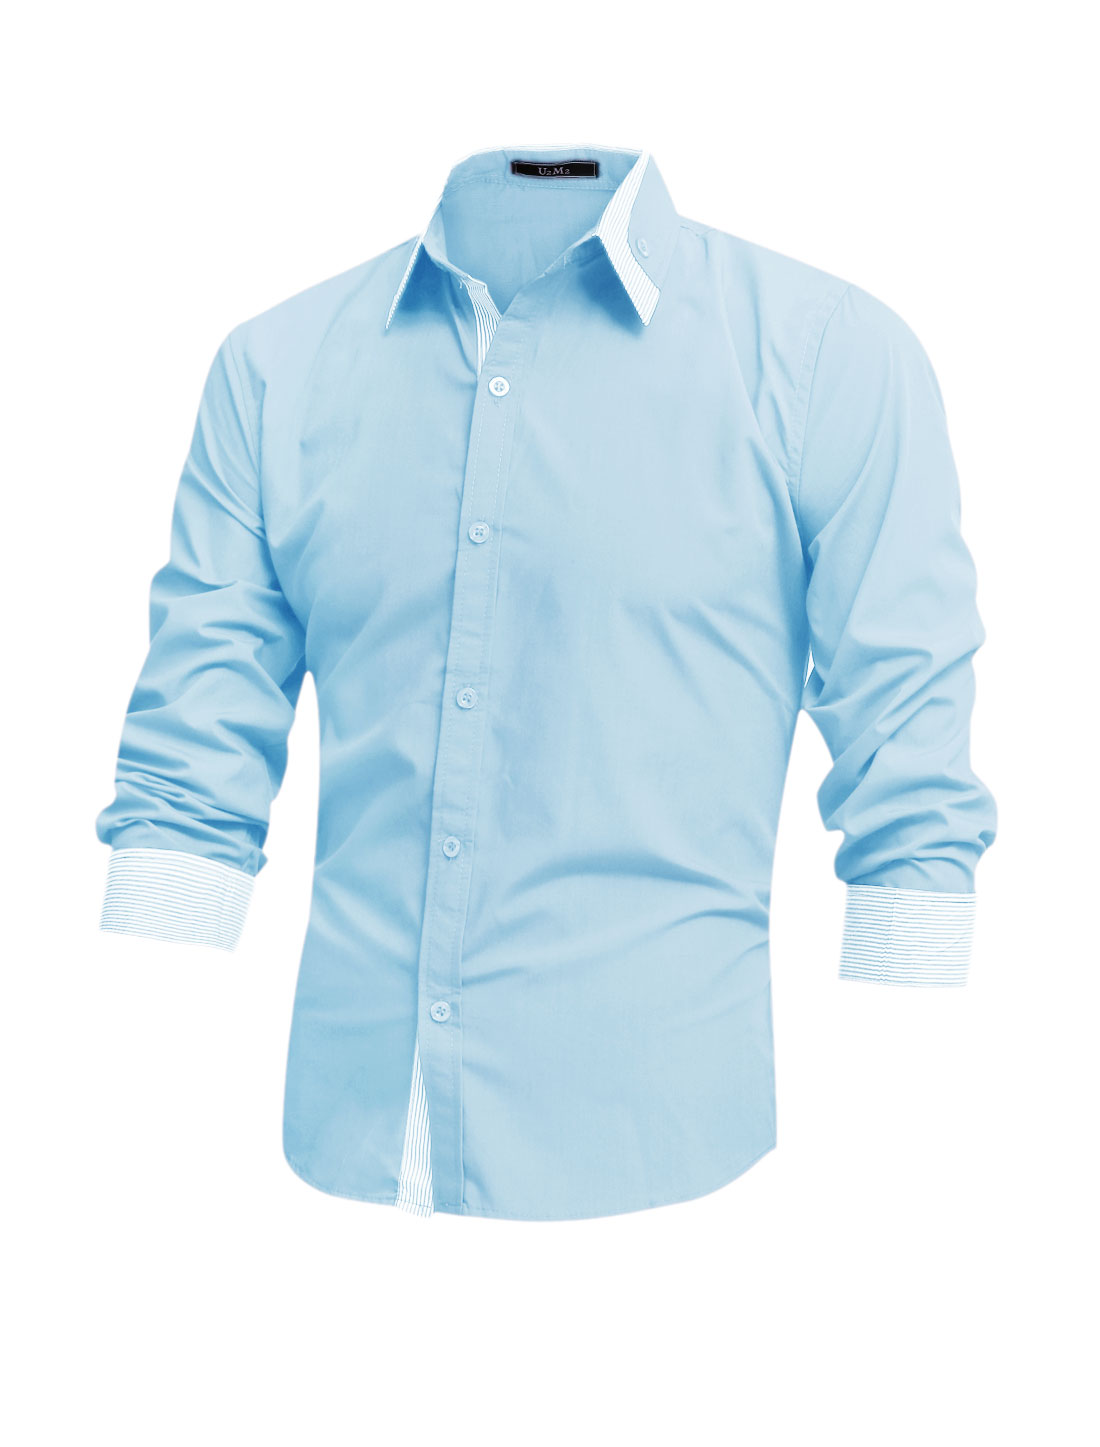 Men Long Sleeve Button Up Button Docor Stripes Detail Shirt Sky Blue M